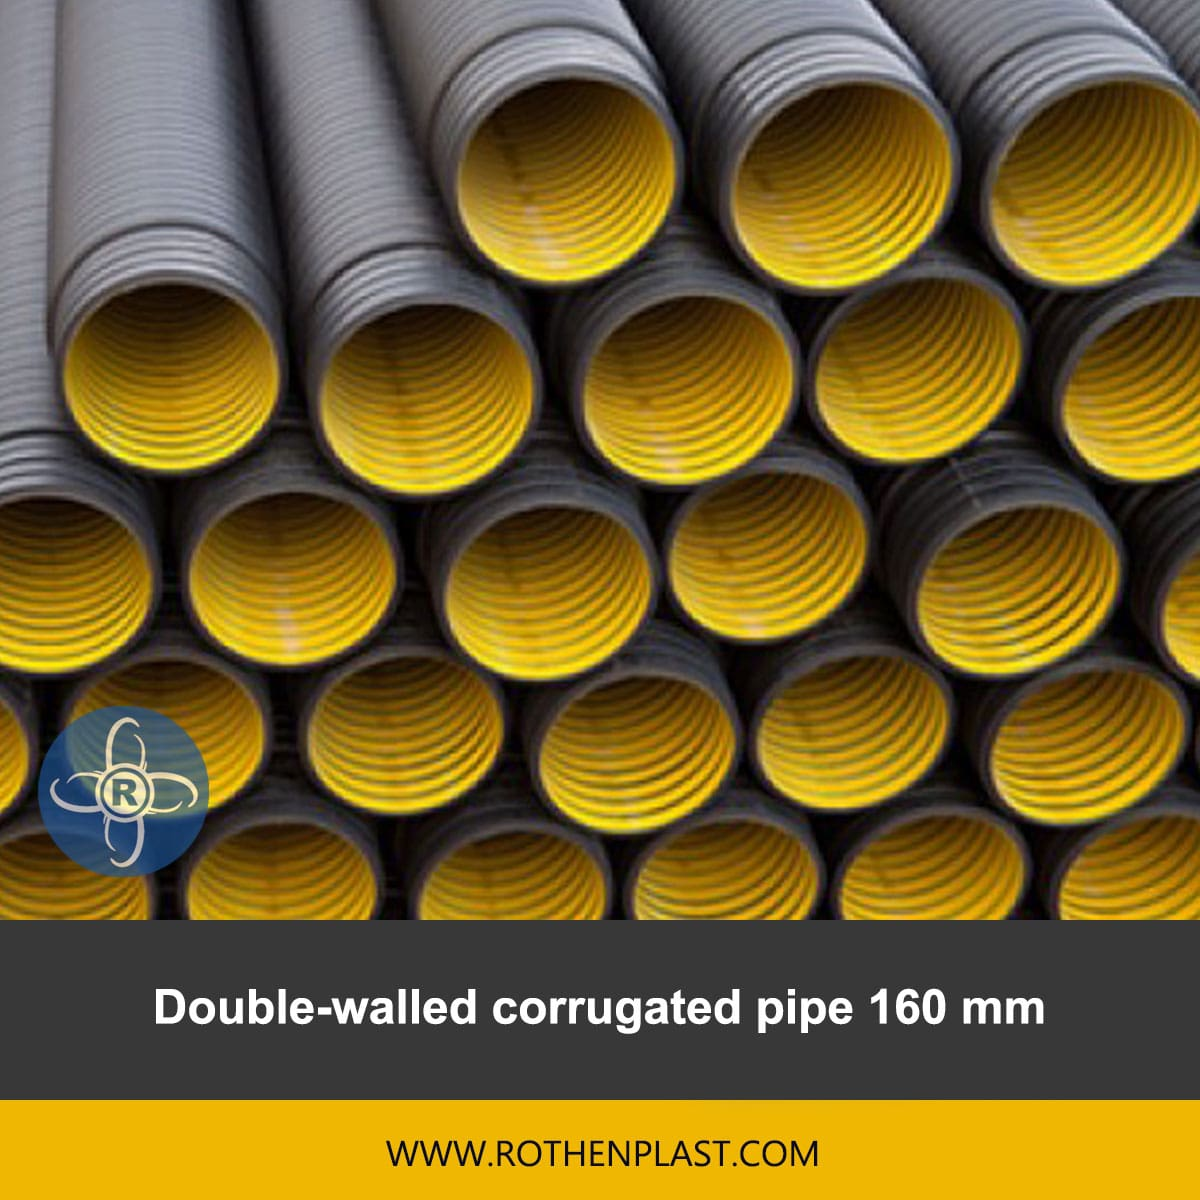 Double walled corrugated pipe 160 mm